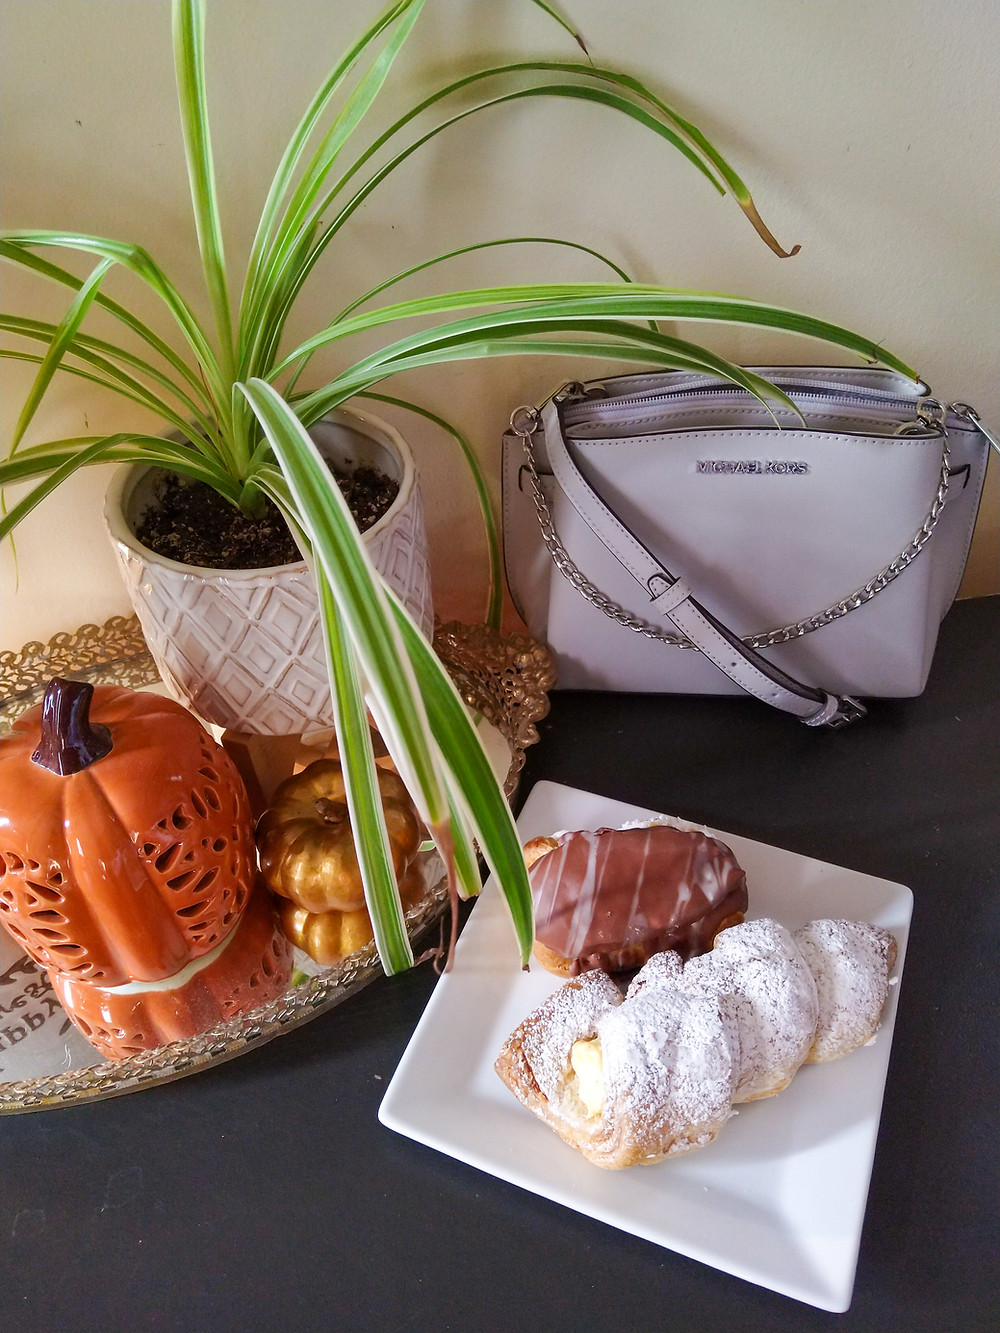 micheal kors bag with fall decor and pastries